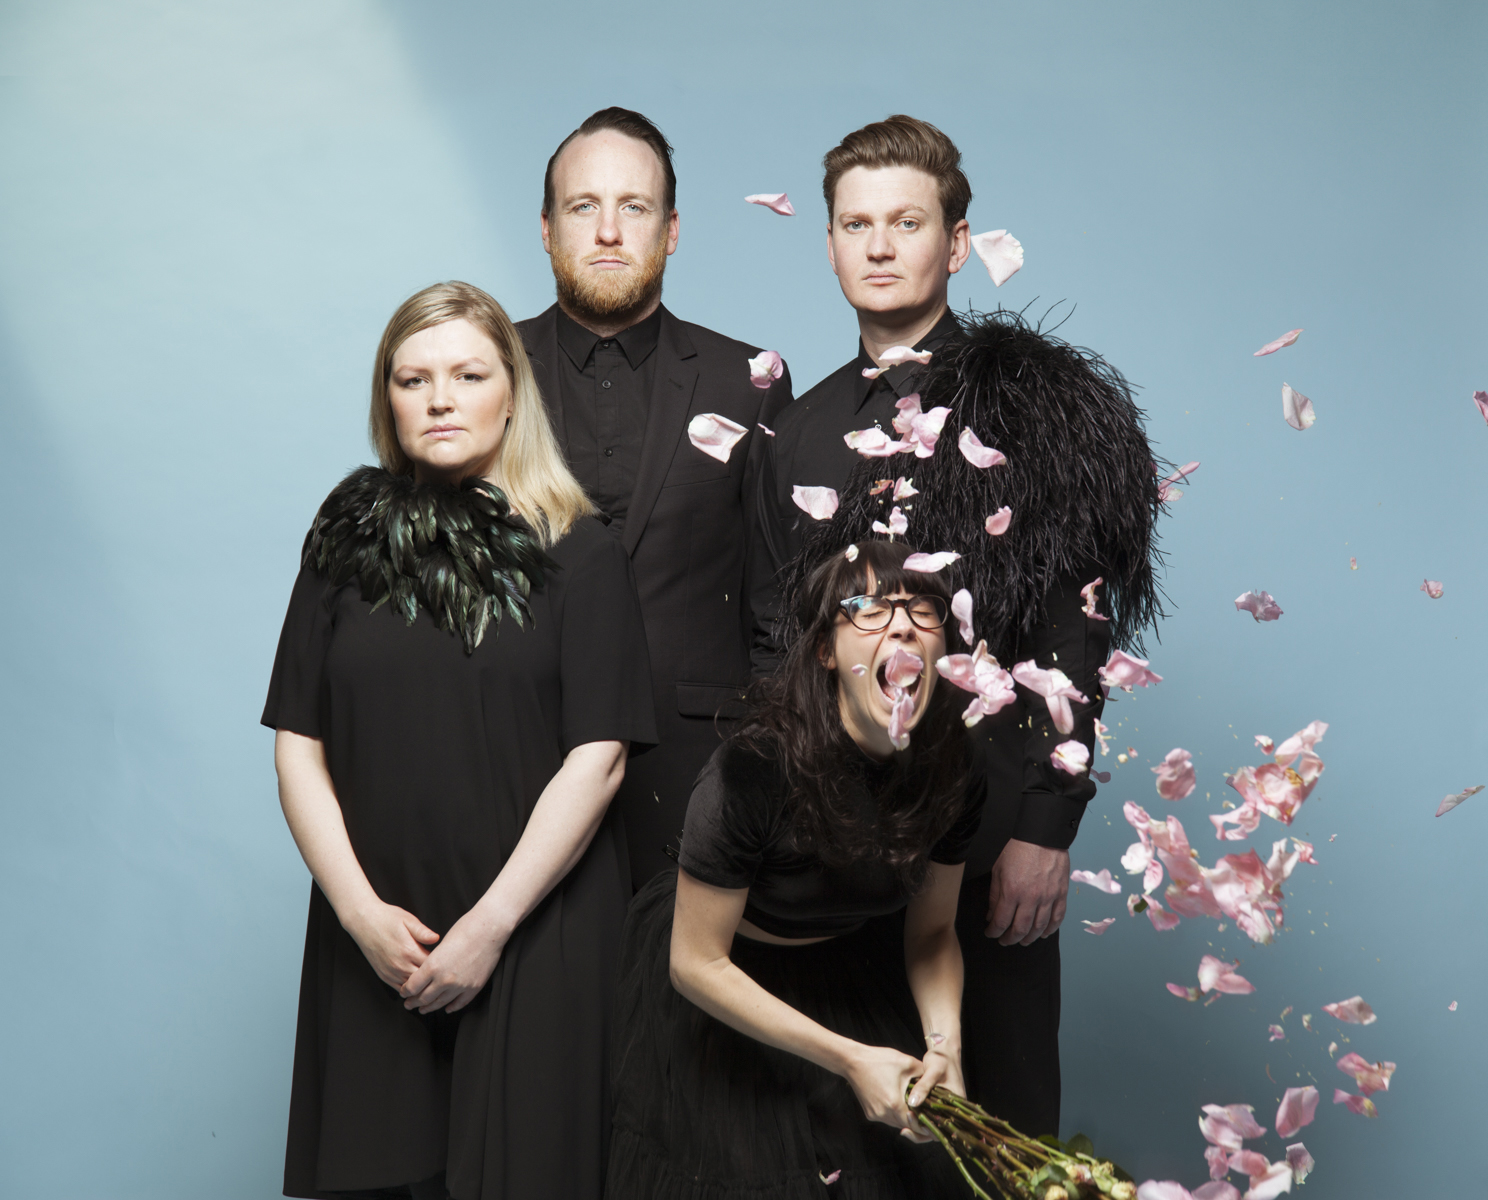 Four performers against a blue background, one is yelling and throwing rose petals